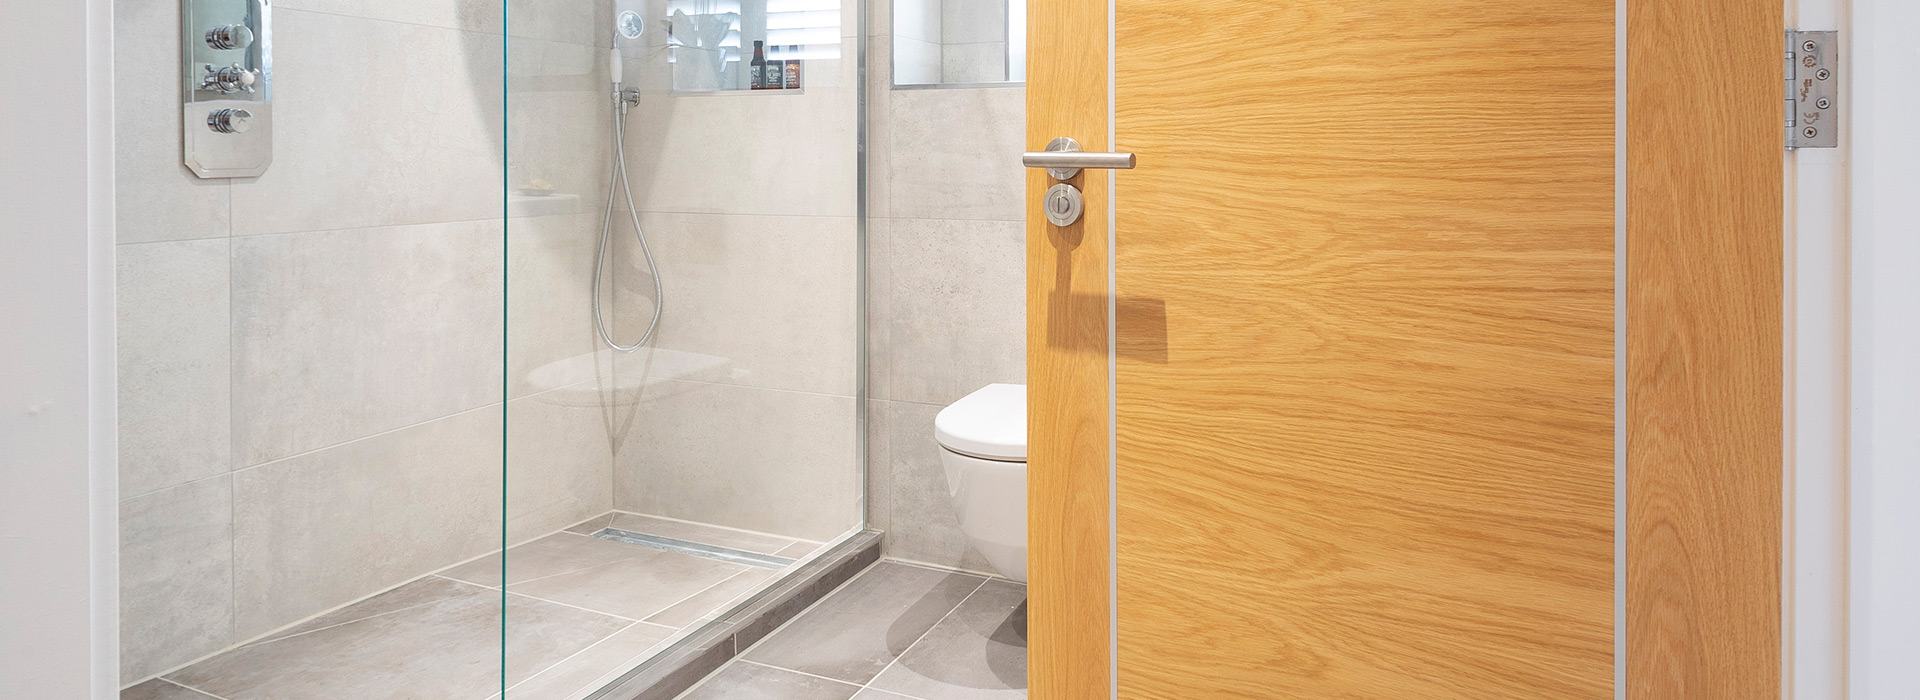 Grey bathroom tiles and oak doors